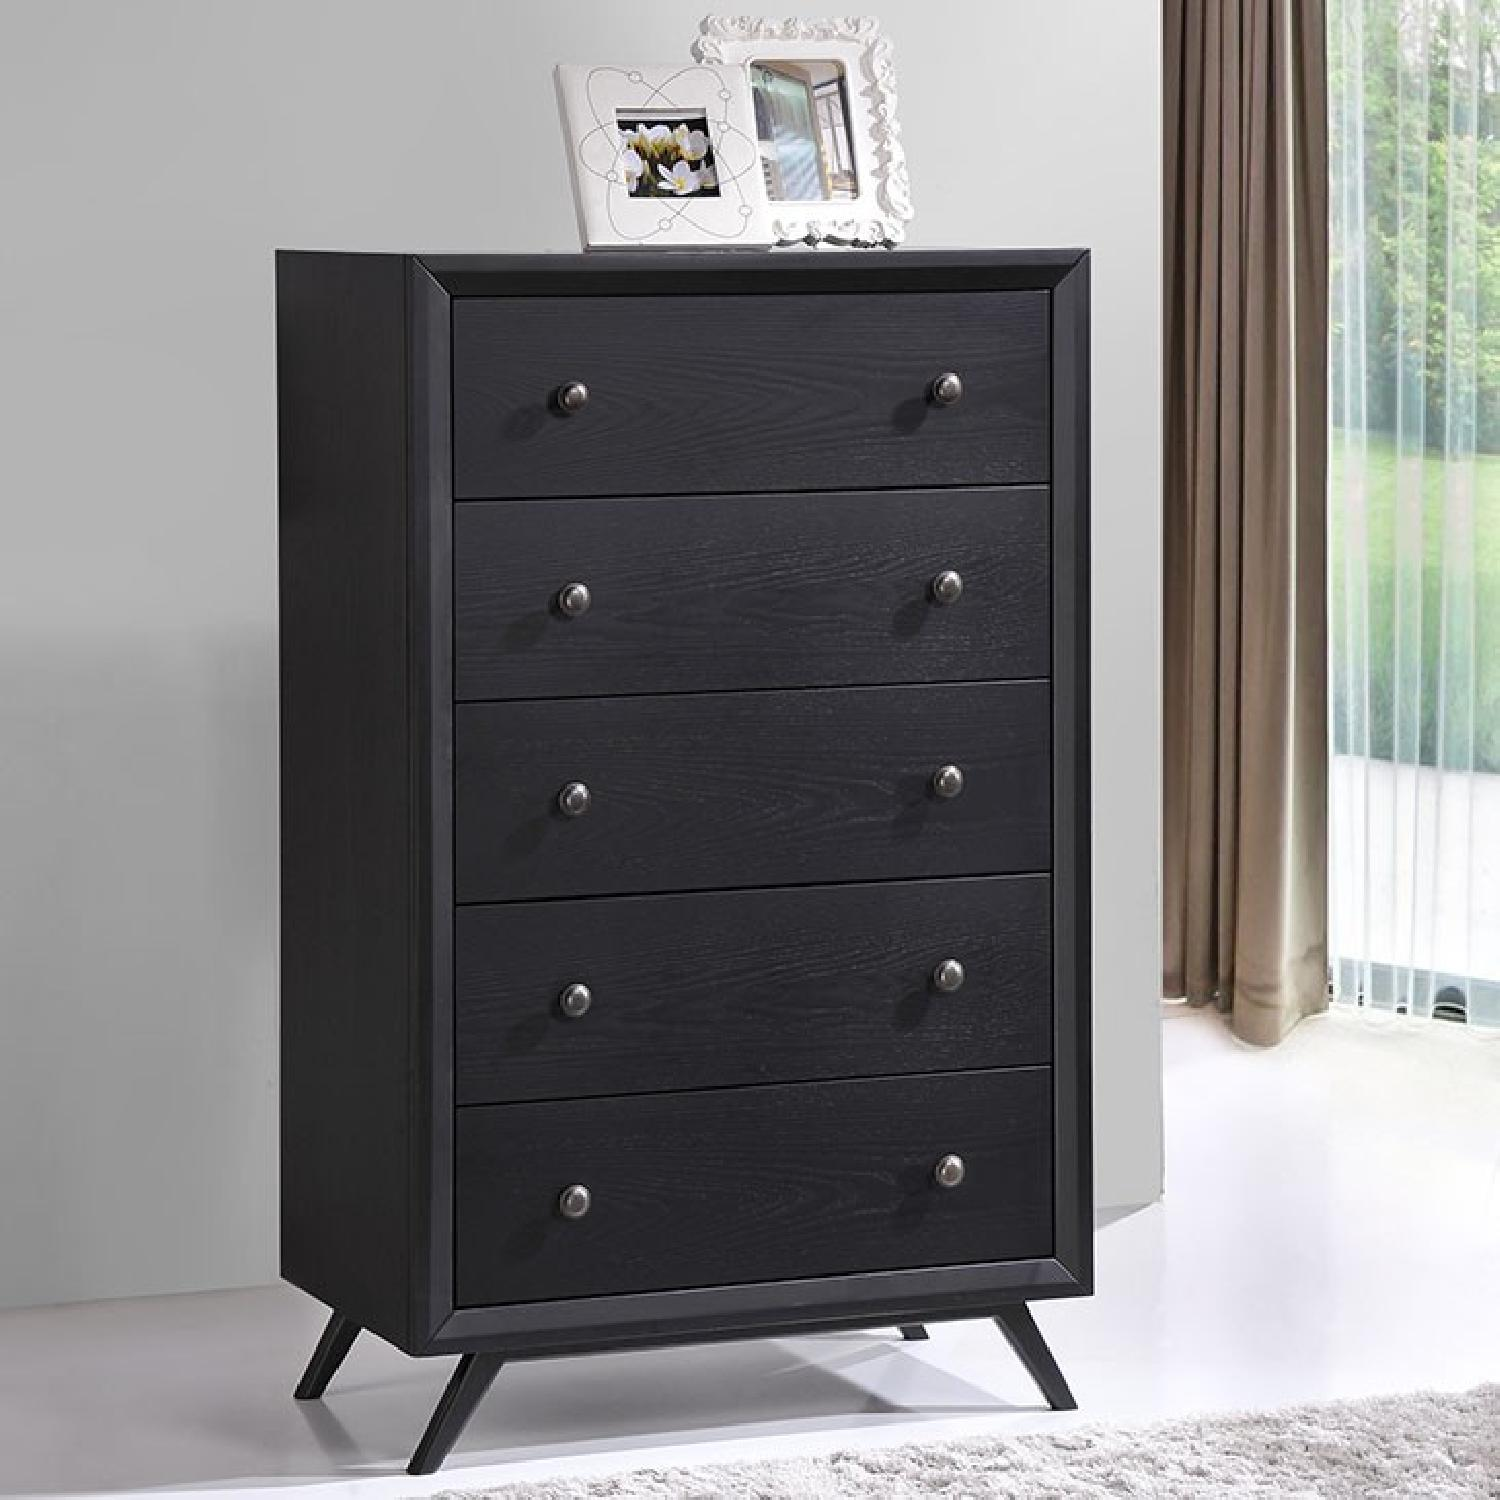 Manhattan Home Design Modern Chest in Black-2